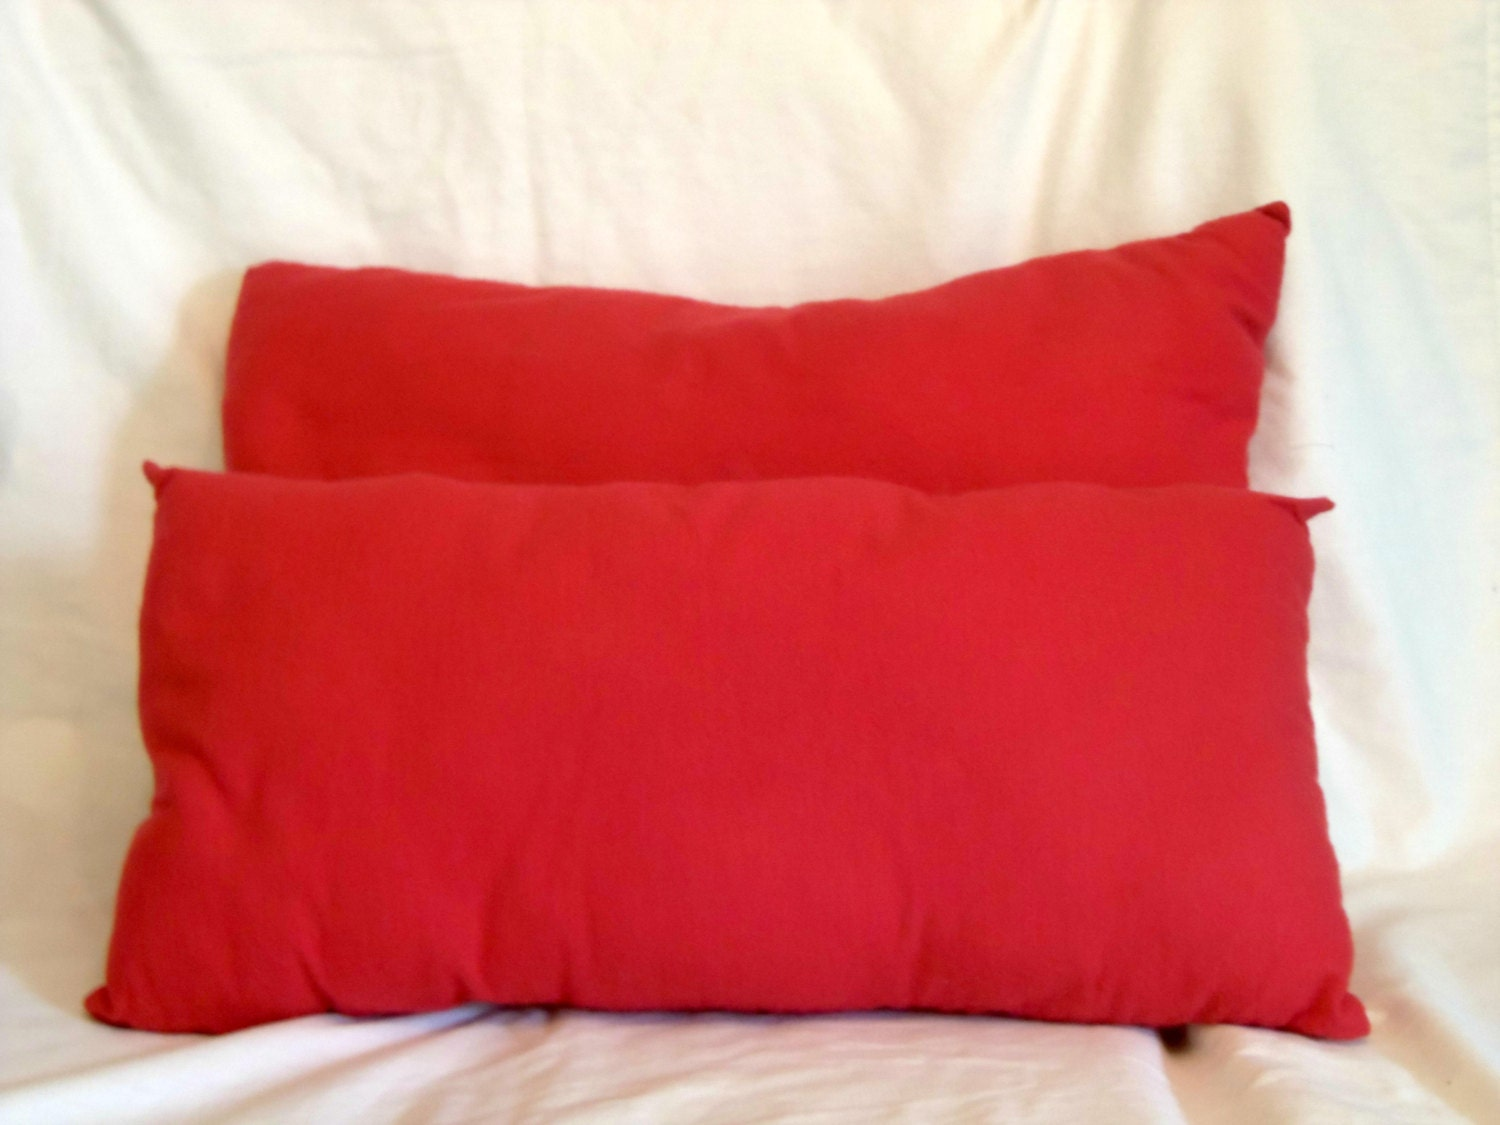 Red Throw Pillow For Bed : Decorative Bed Pillows Two Pillow Set Red Flannel Pillows